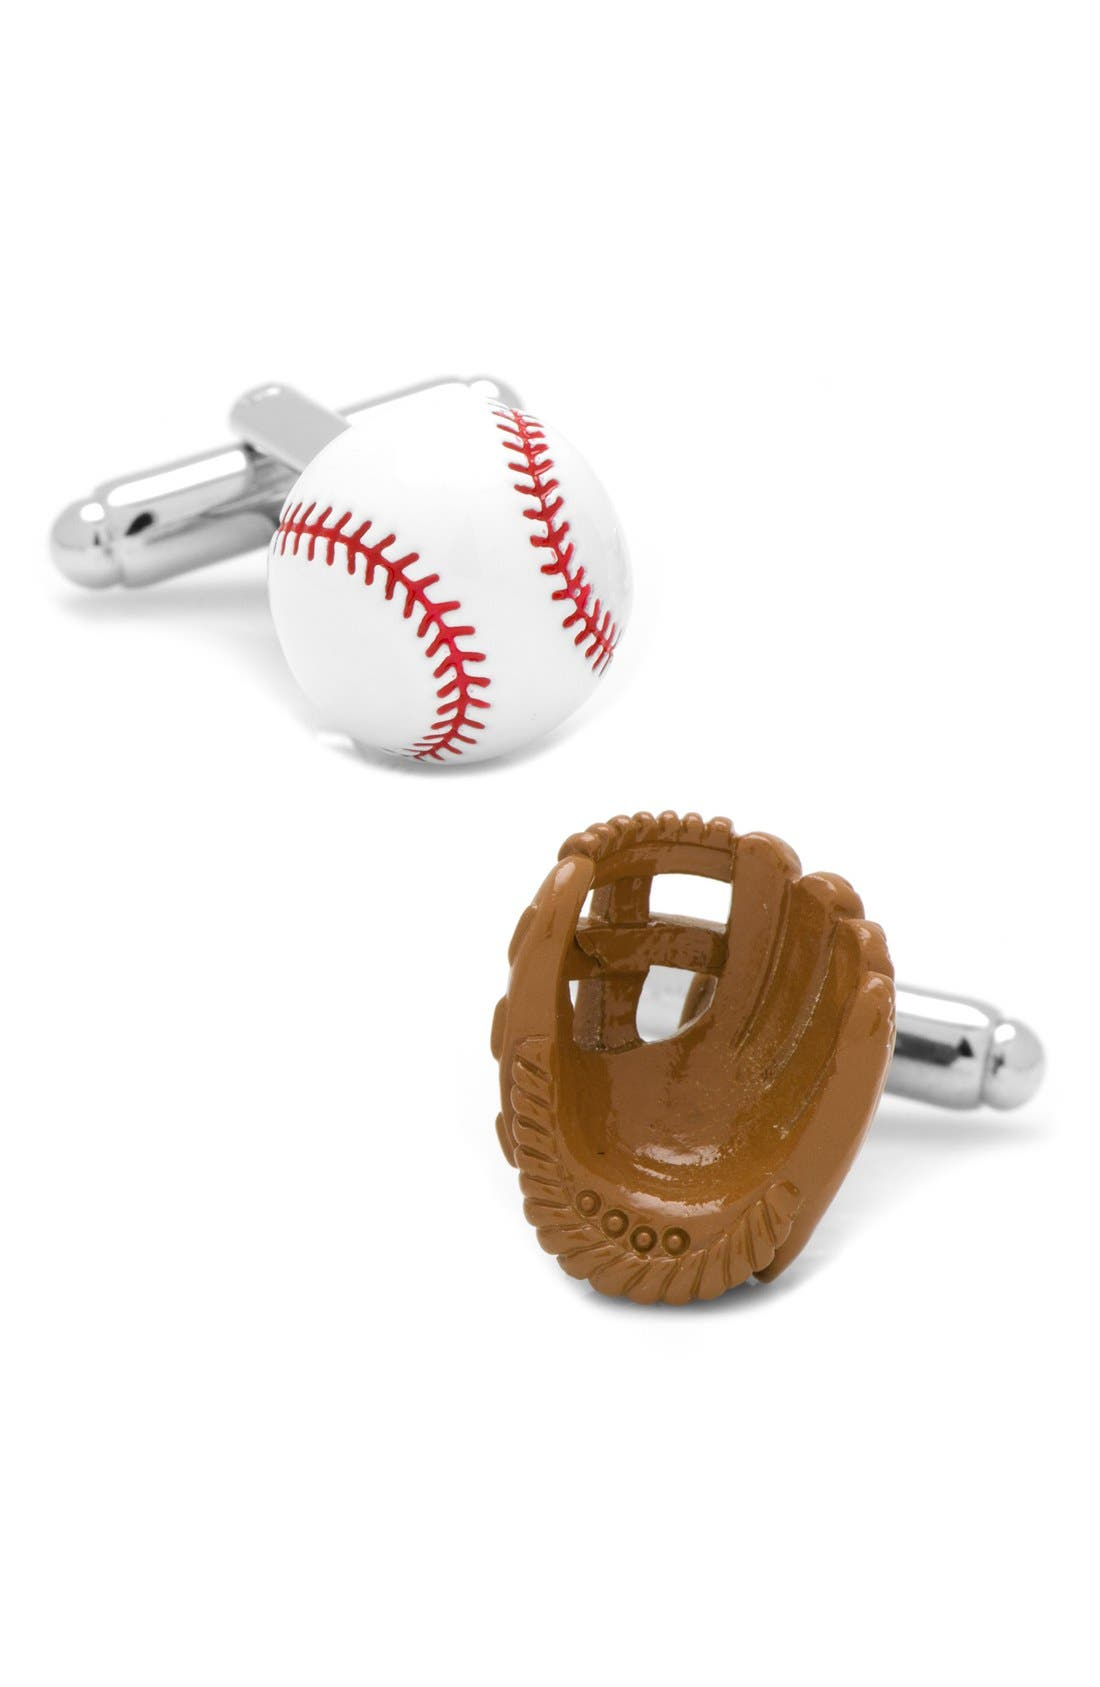 Baseball & Glove Cuff Links,                             Main thumbnail 1, color,                             White Multi